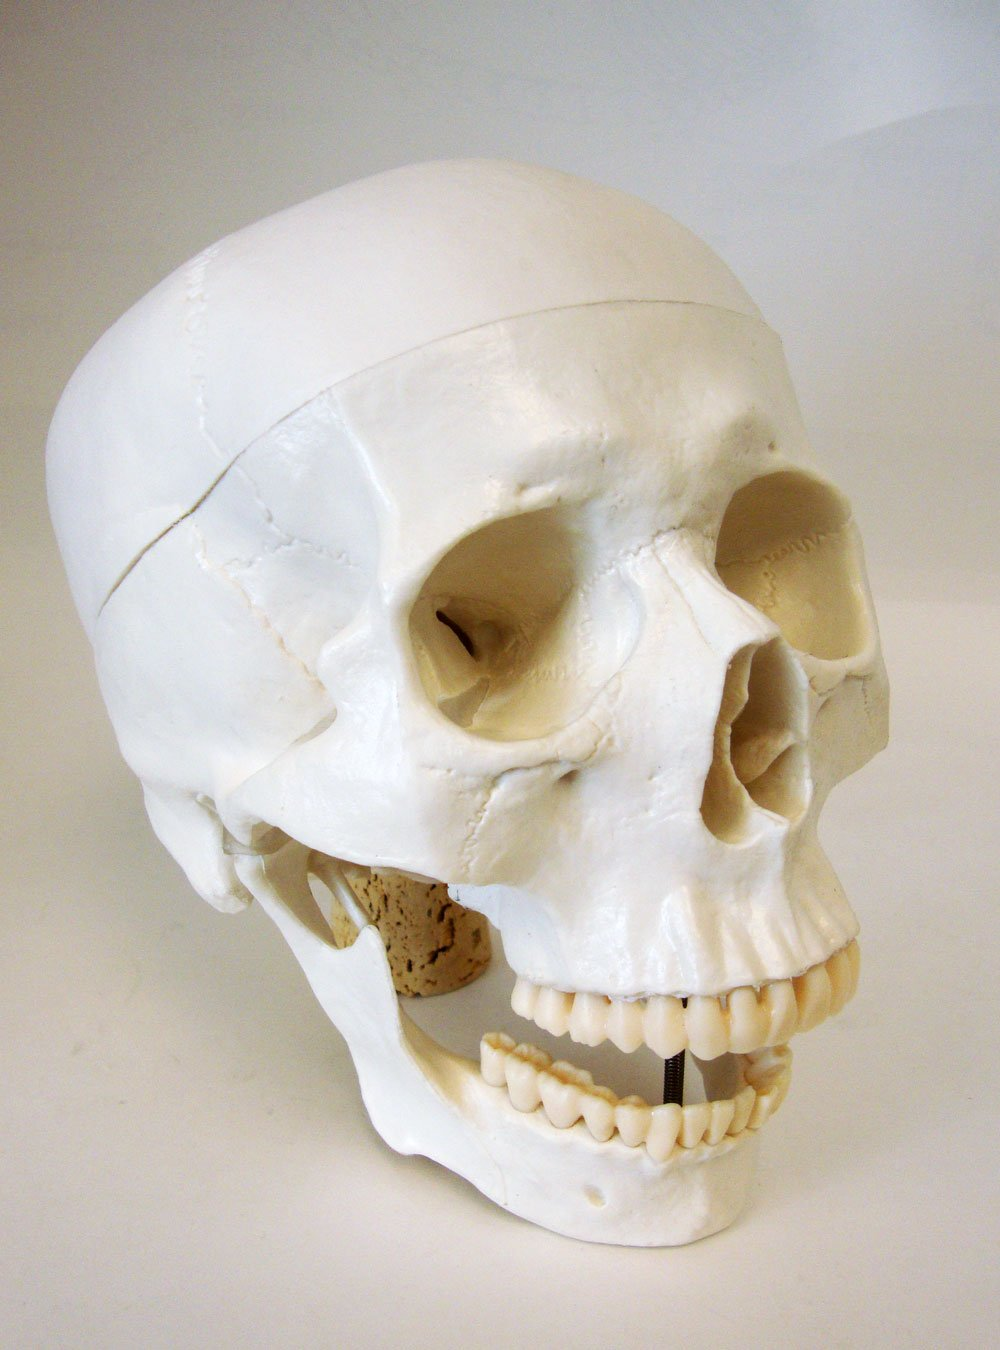 Amazon.com: Life Size Model Human Skull Anatomical Model: Industrial ...